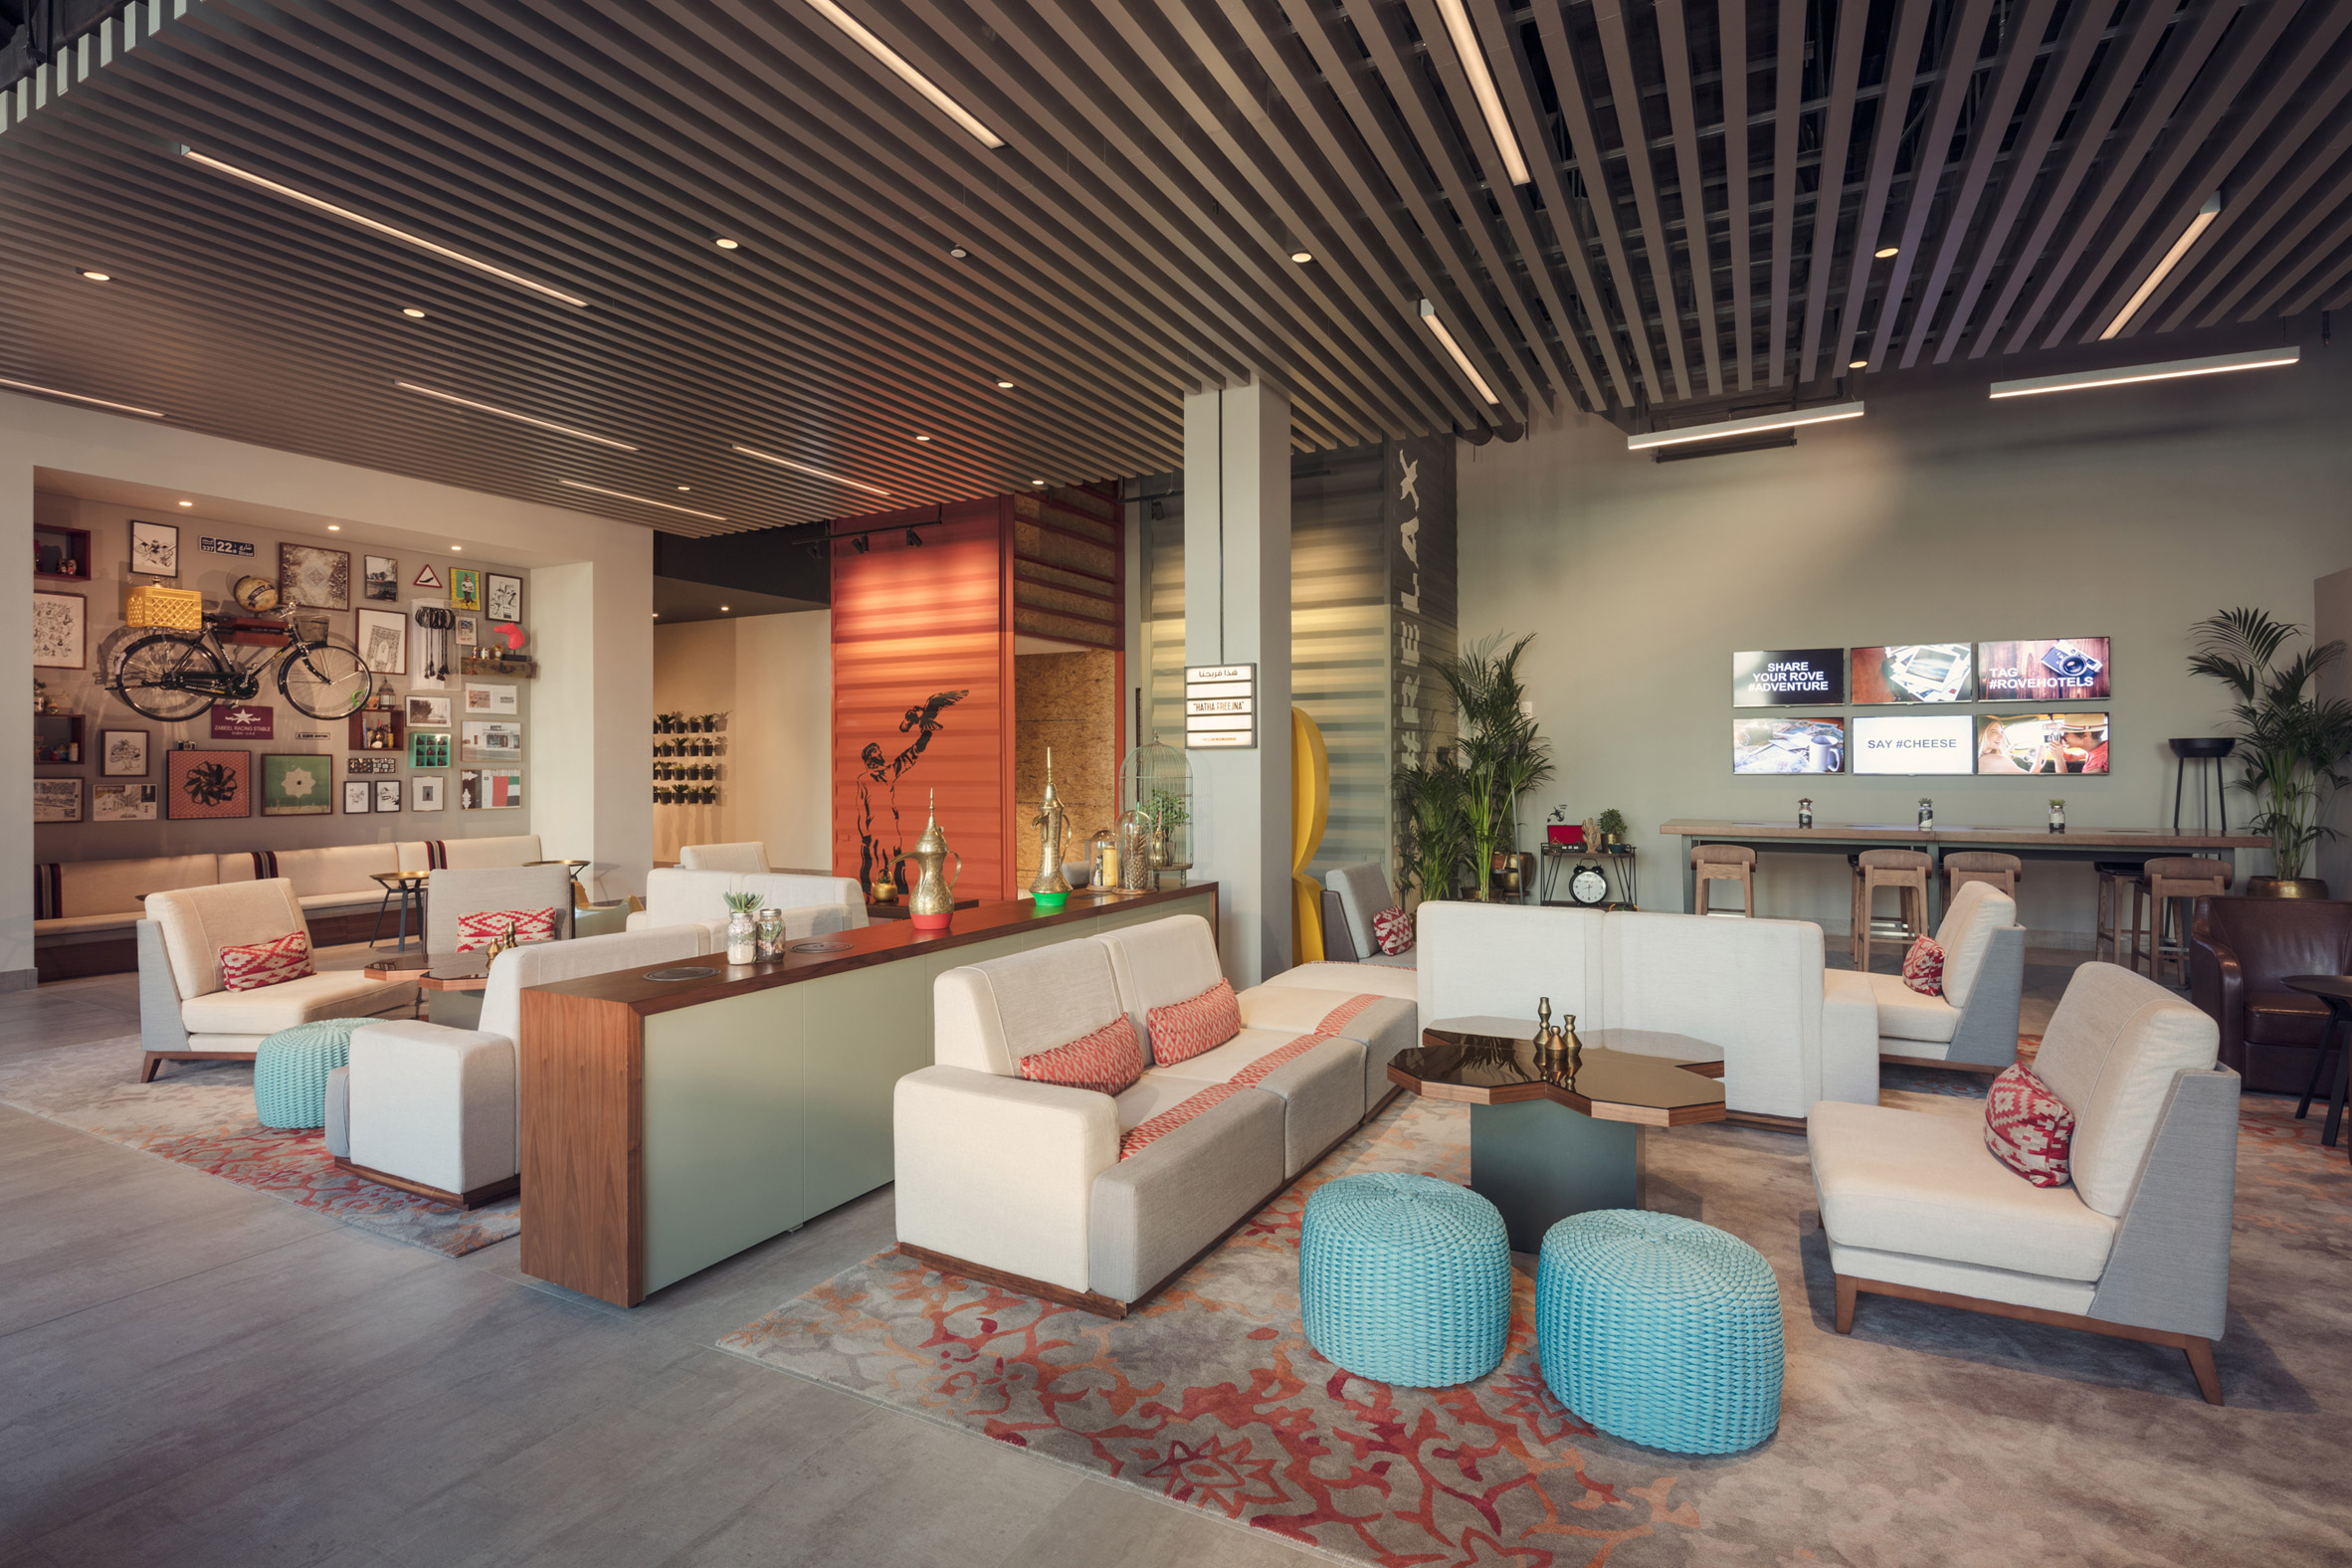 """The Rove Downtown hotel is """"a new concept for Dubai"""" says Anne-Cecile de Chaumont"""